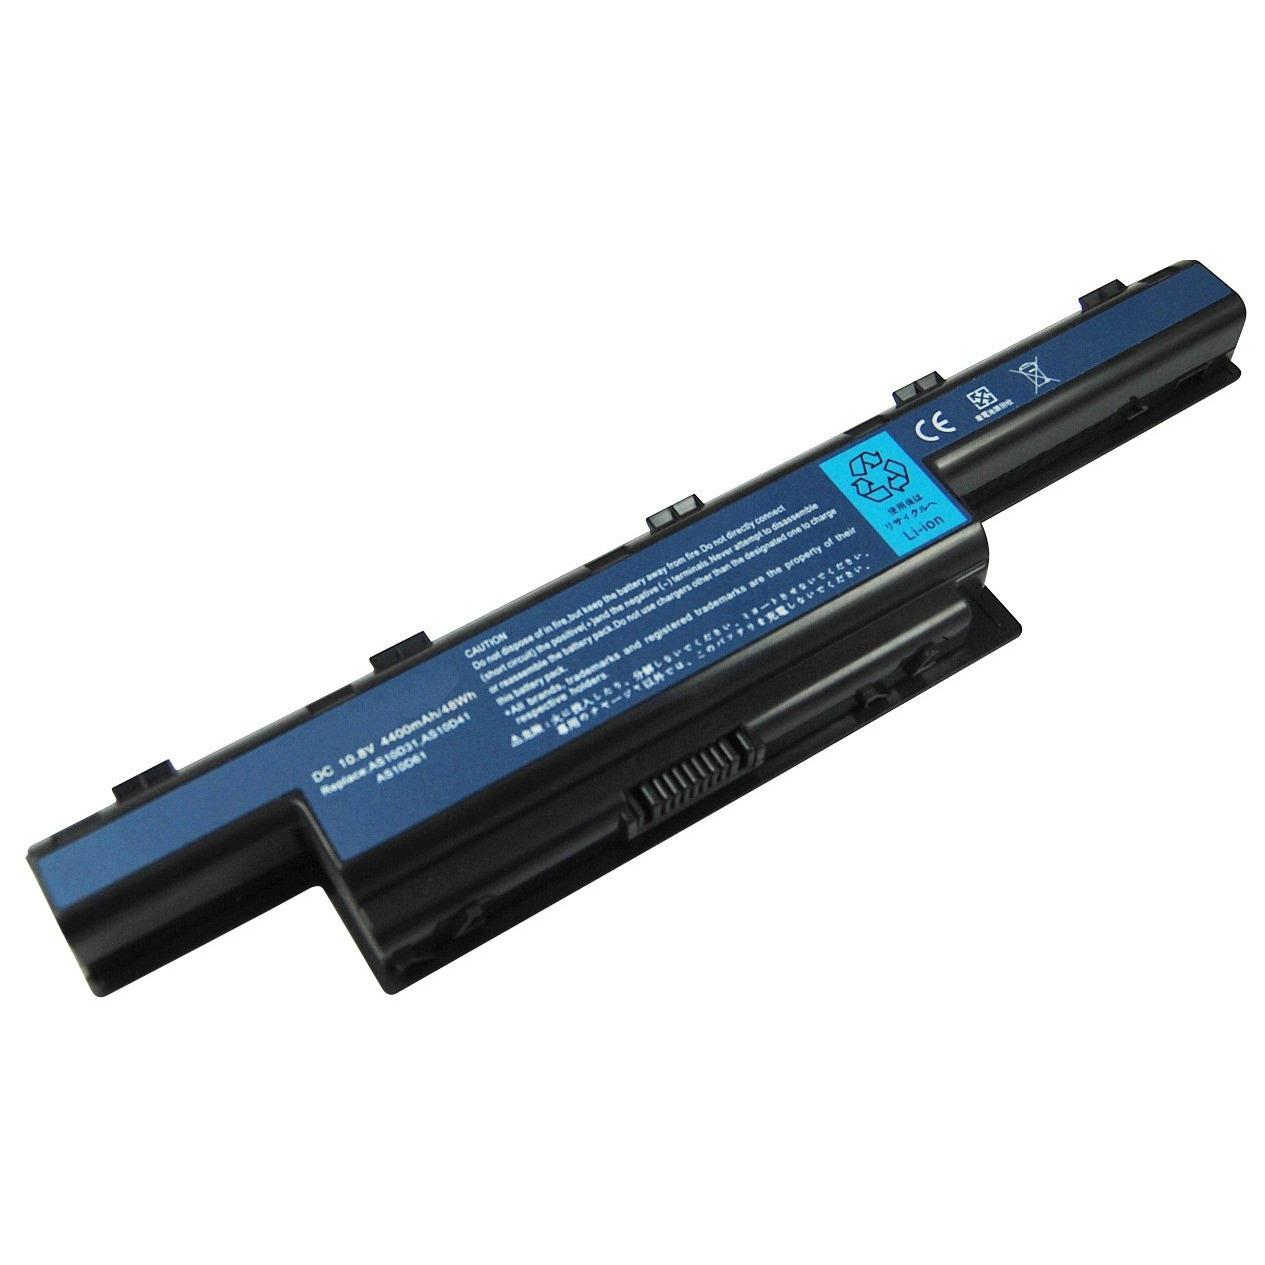 Battery Baterai laptop Acer Aspire 4738 4739 4741 4750 4752 4755 4349